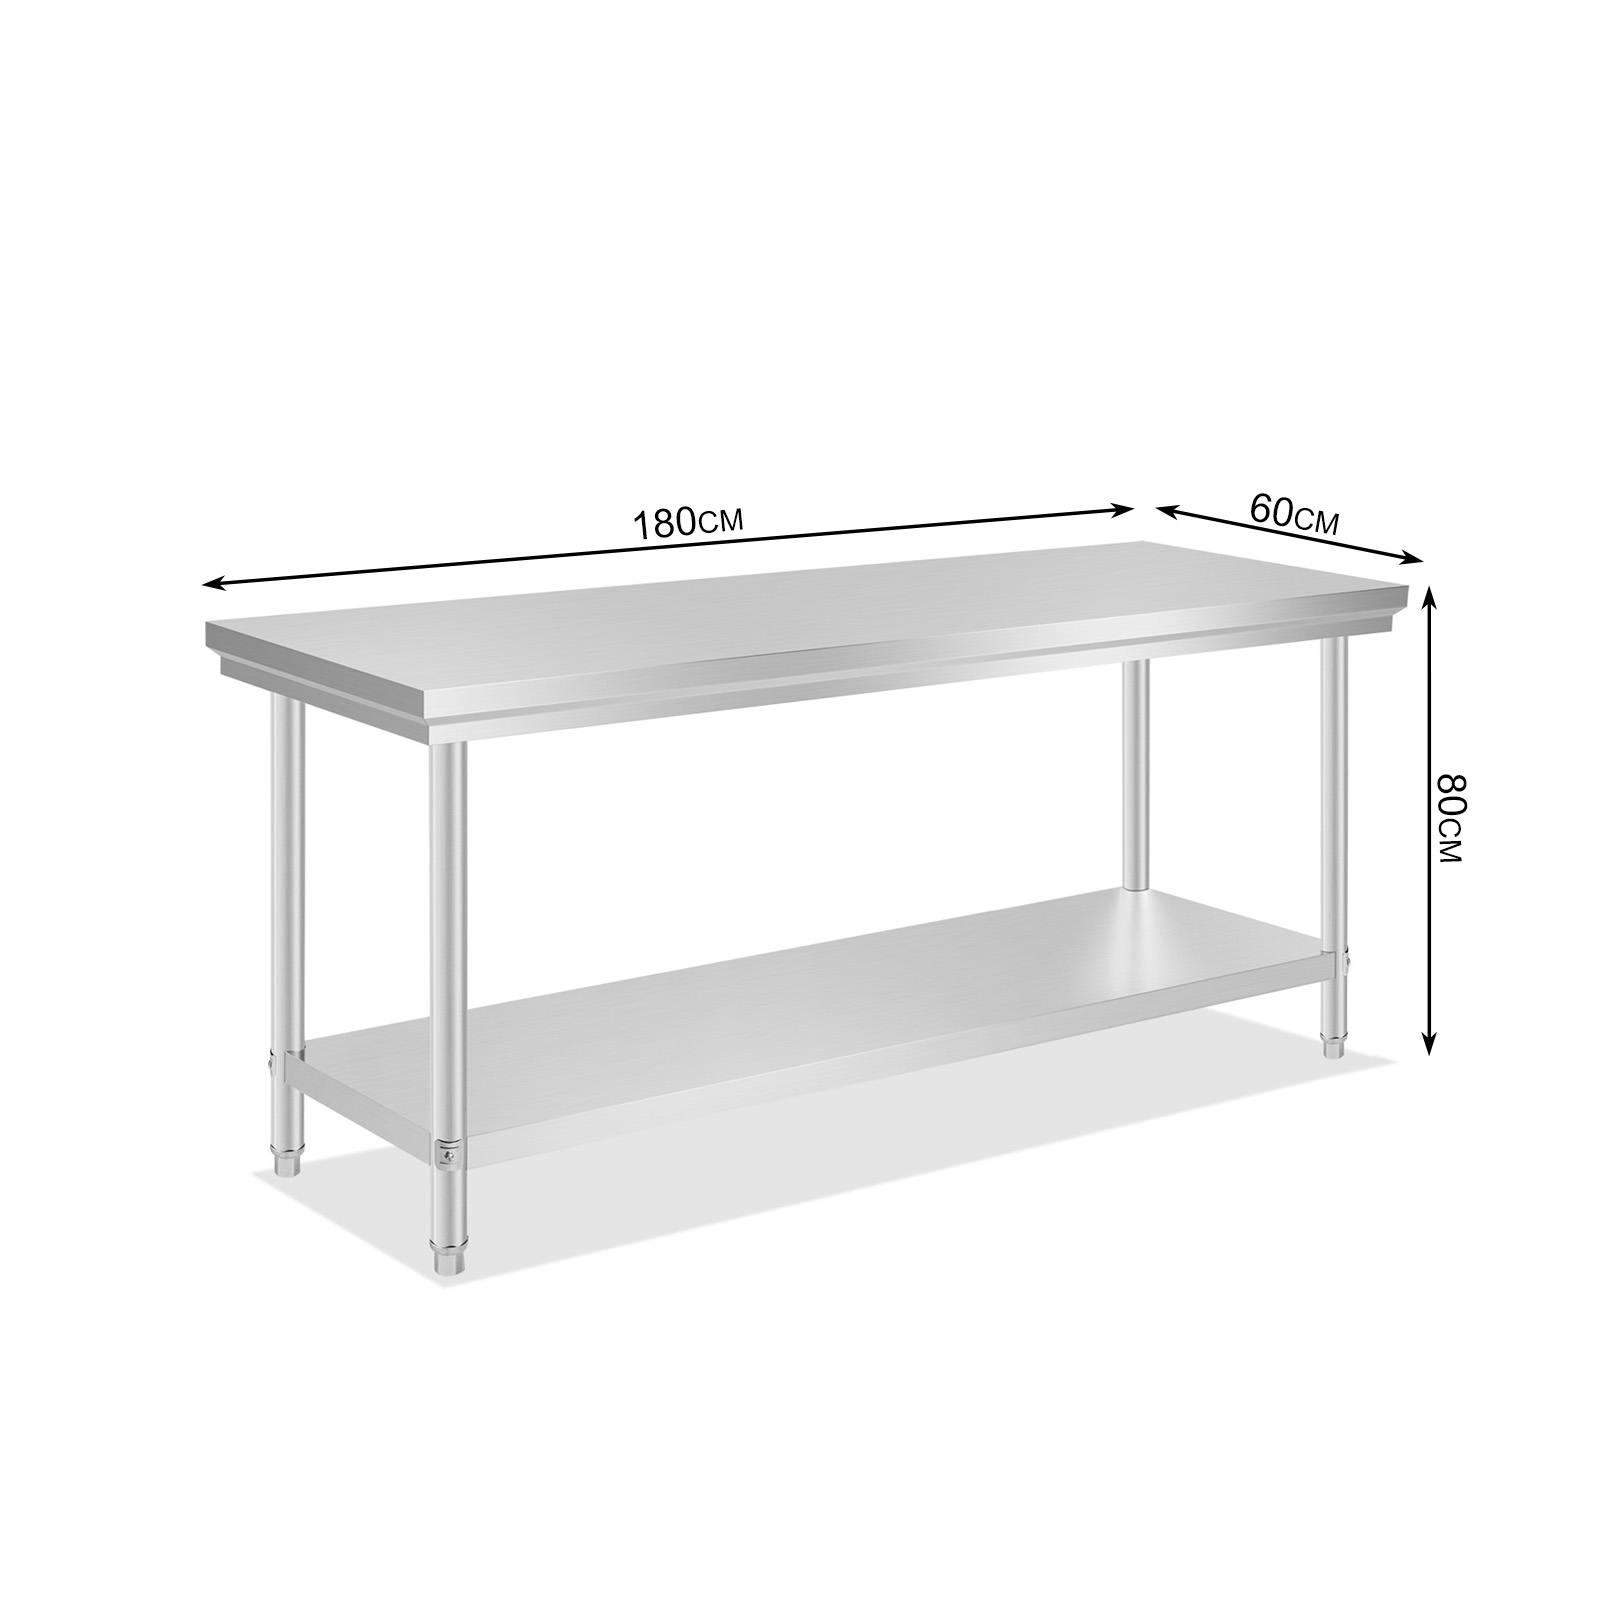 New Stainless Steel Kitchen Restaurant Work Bench Food